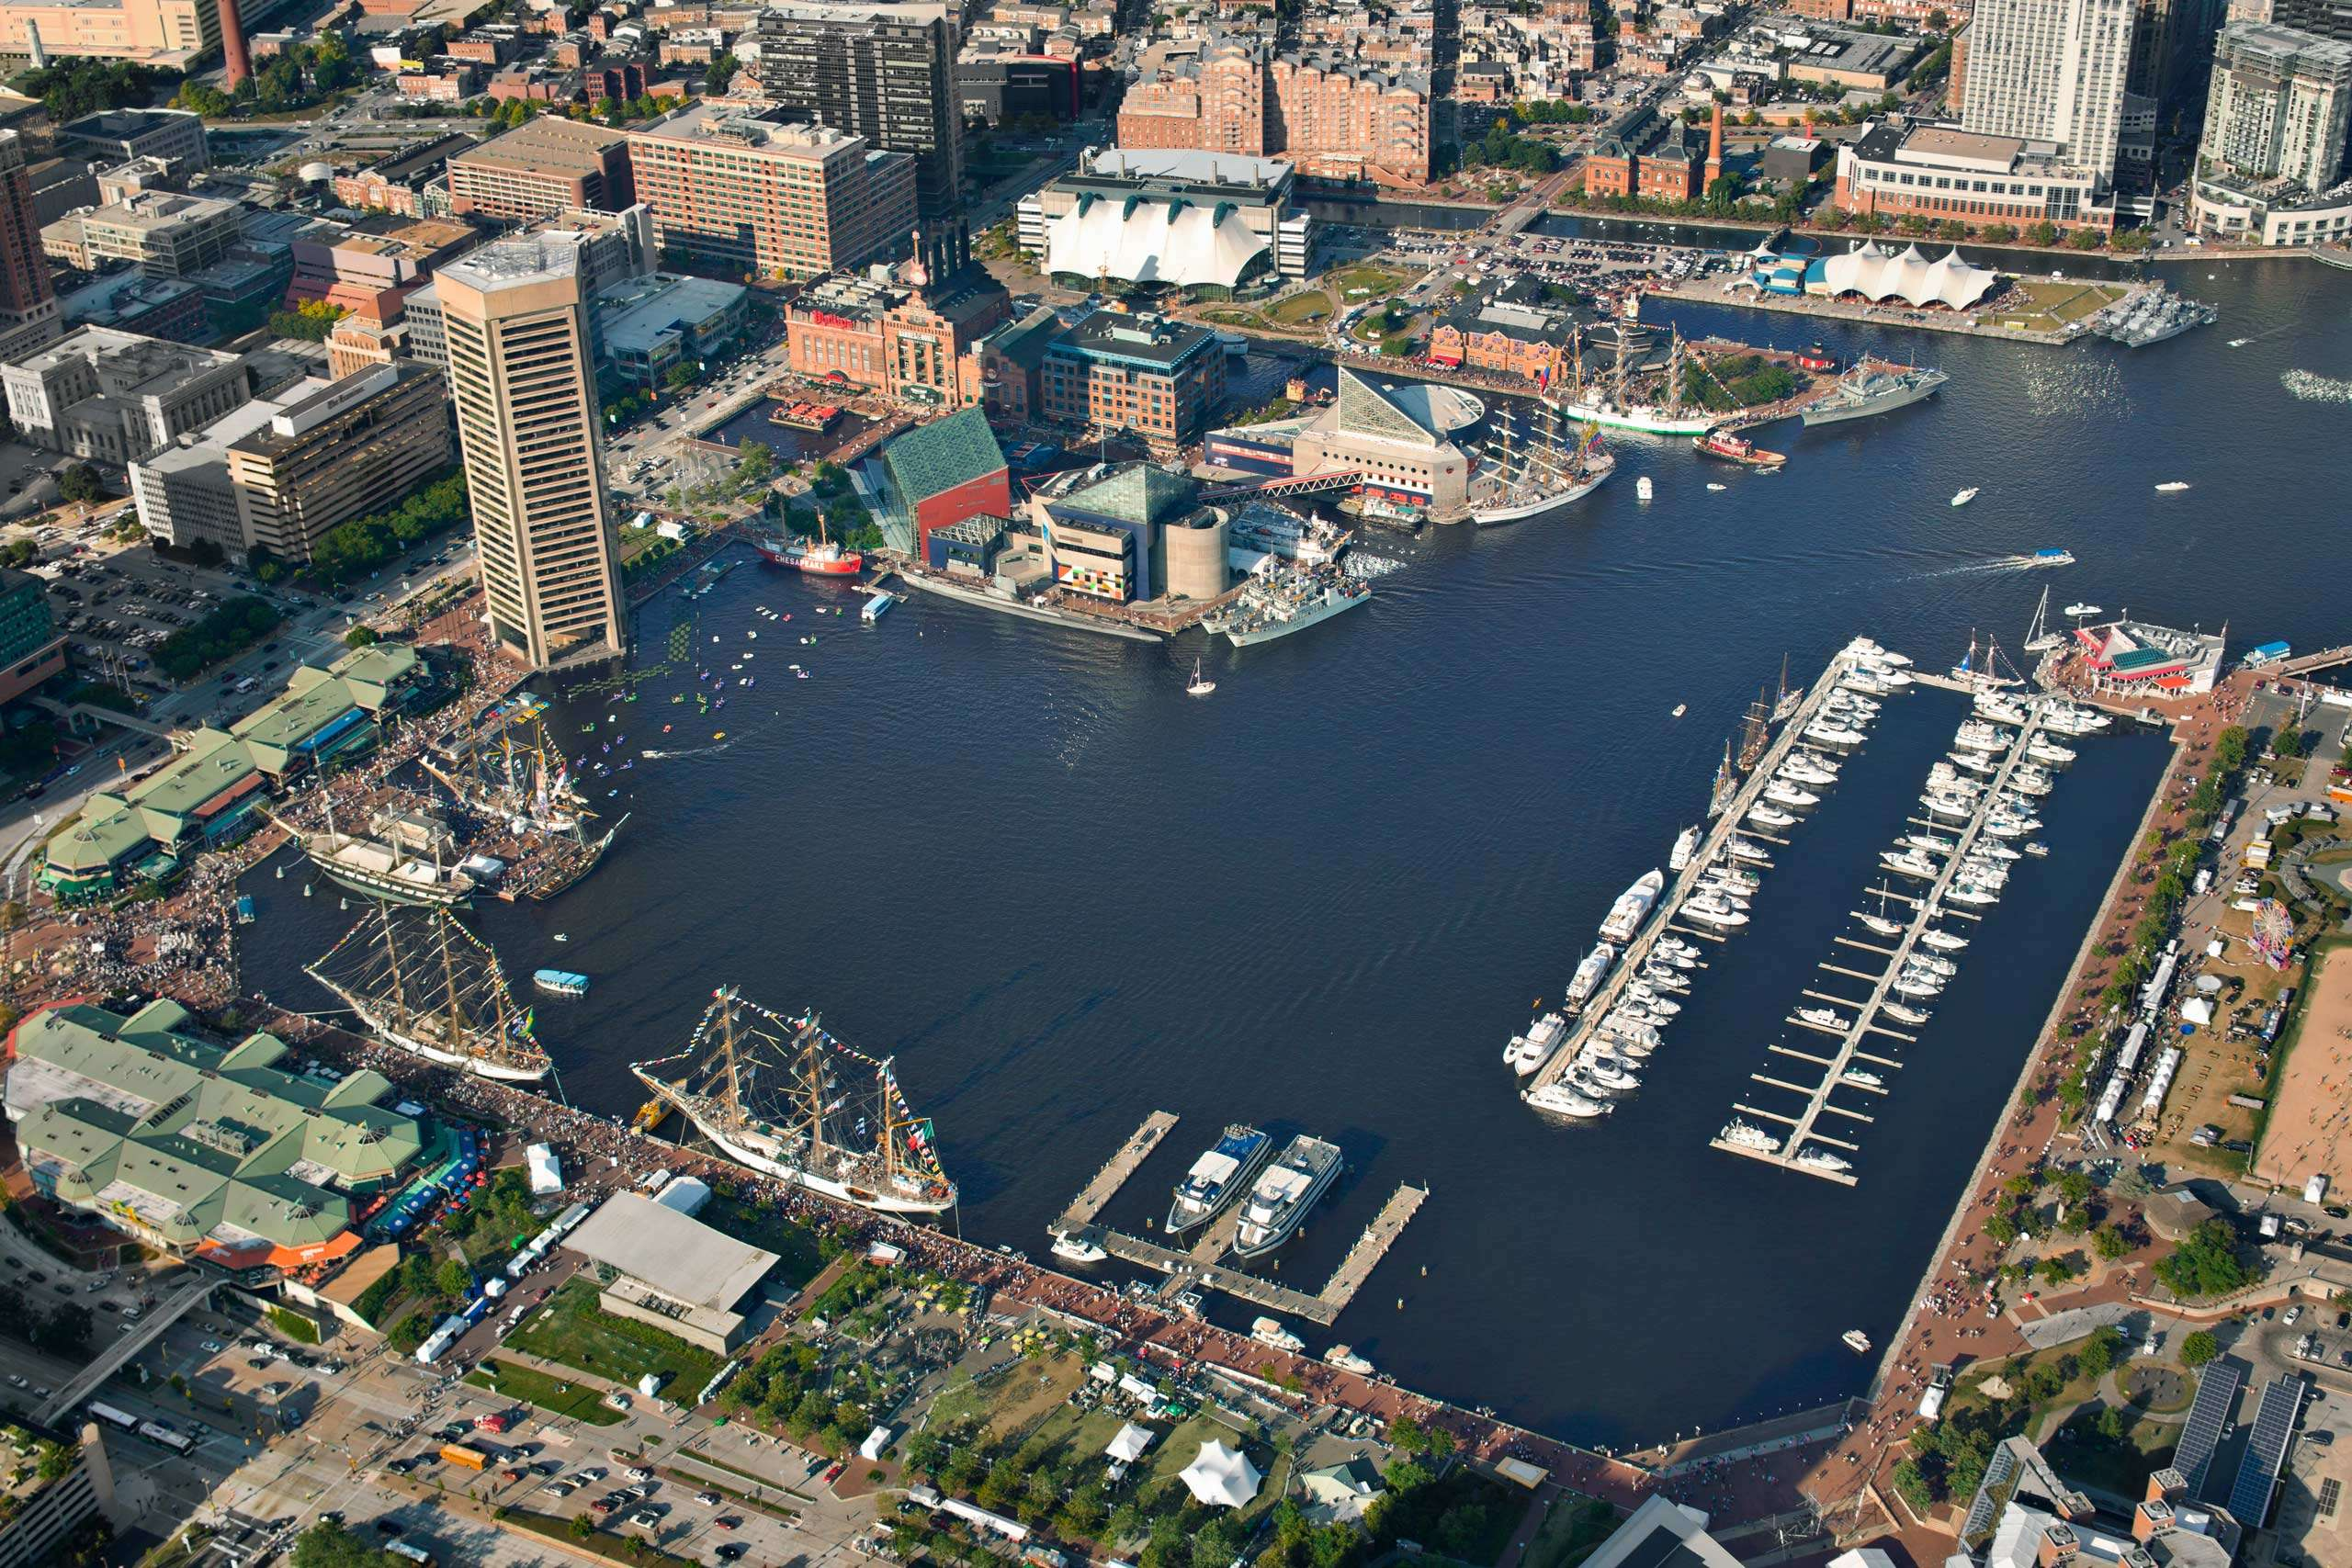 PORTFOLIO - Baltimore Skylines #8 and Baltimore - Attractions #22 Aerial View of Baltimore's Inner Harbor PCG694